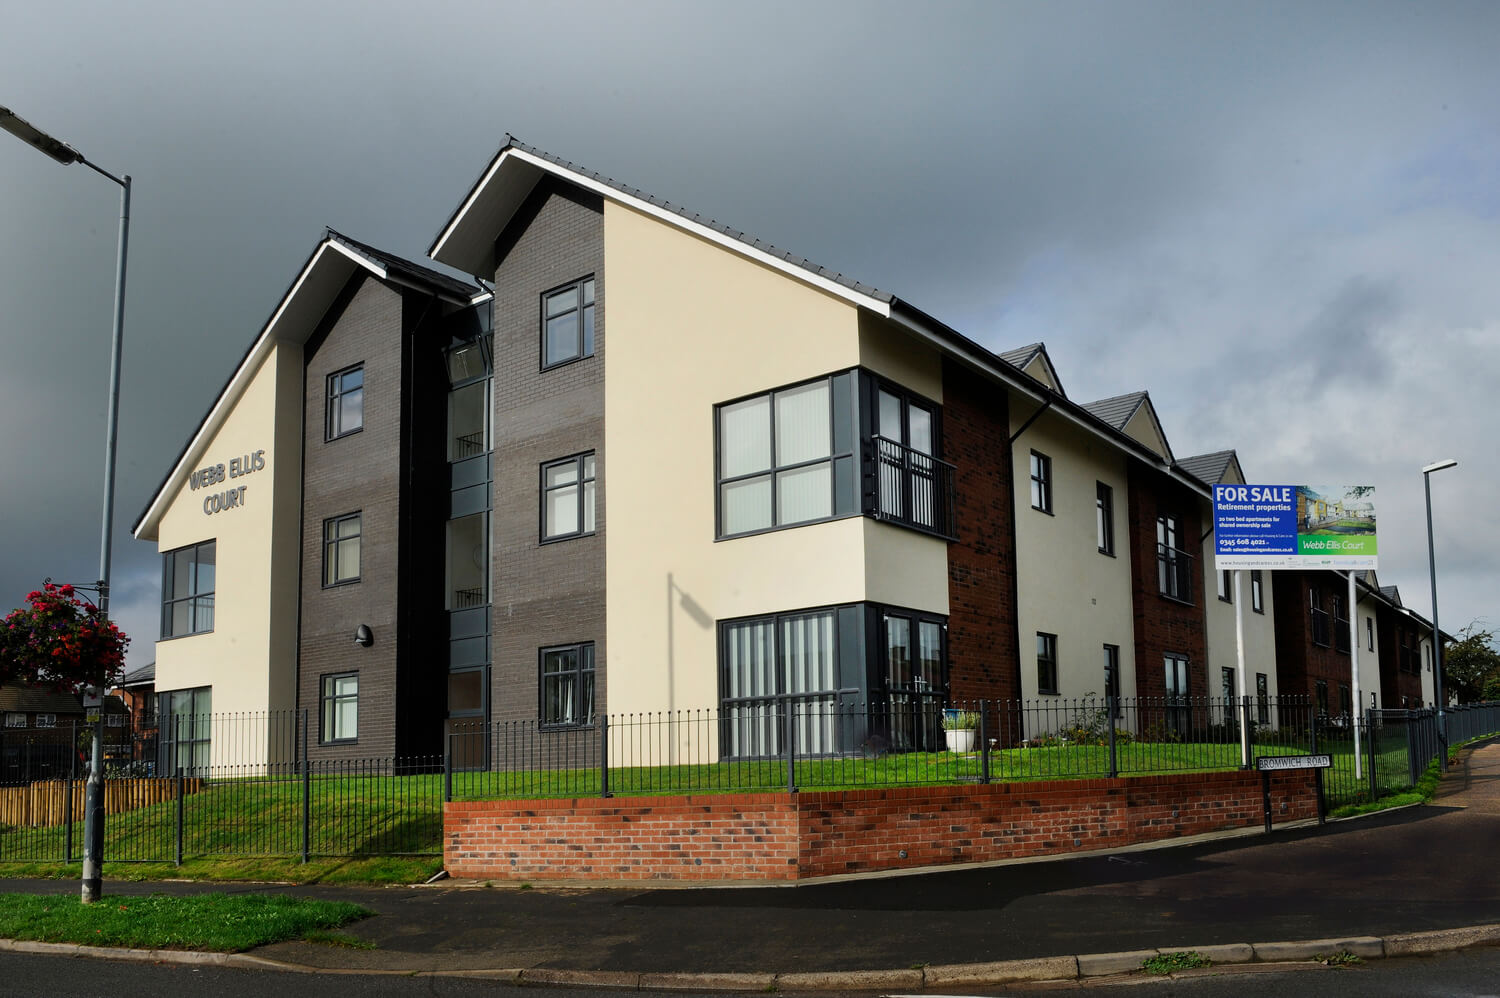 Dramatic architectural photography for property portfolio, Birmingham GO Care Homes